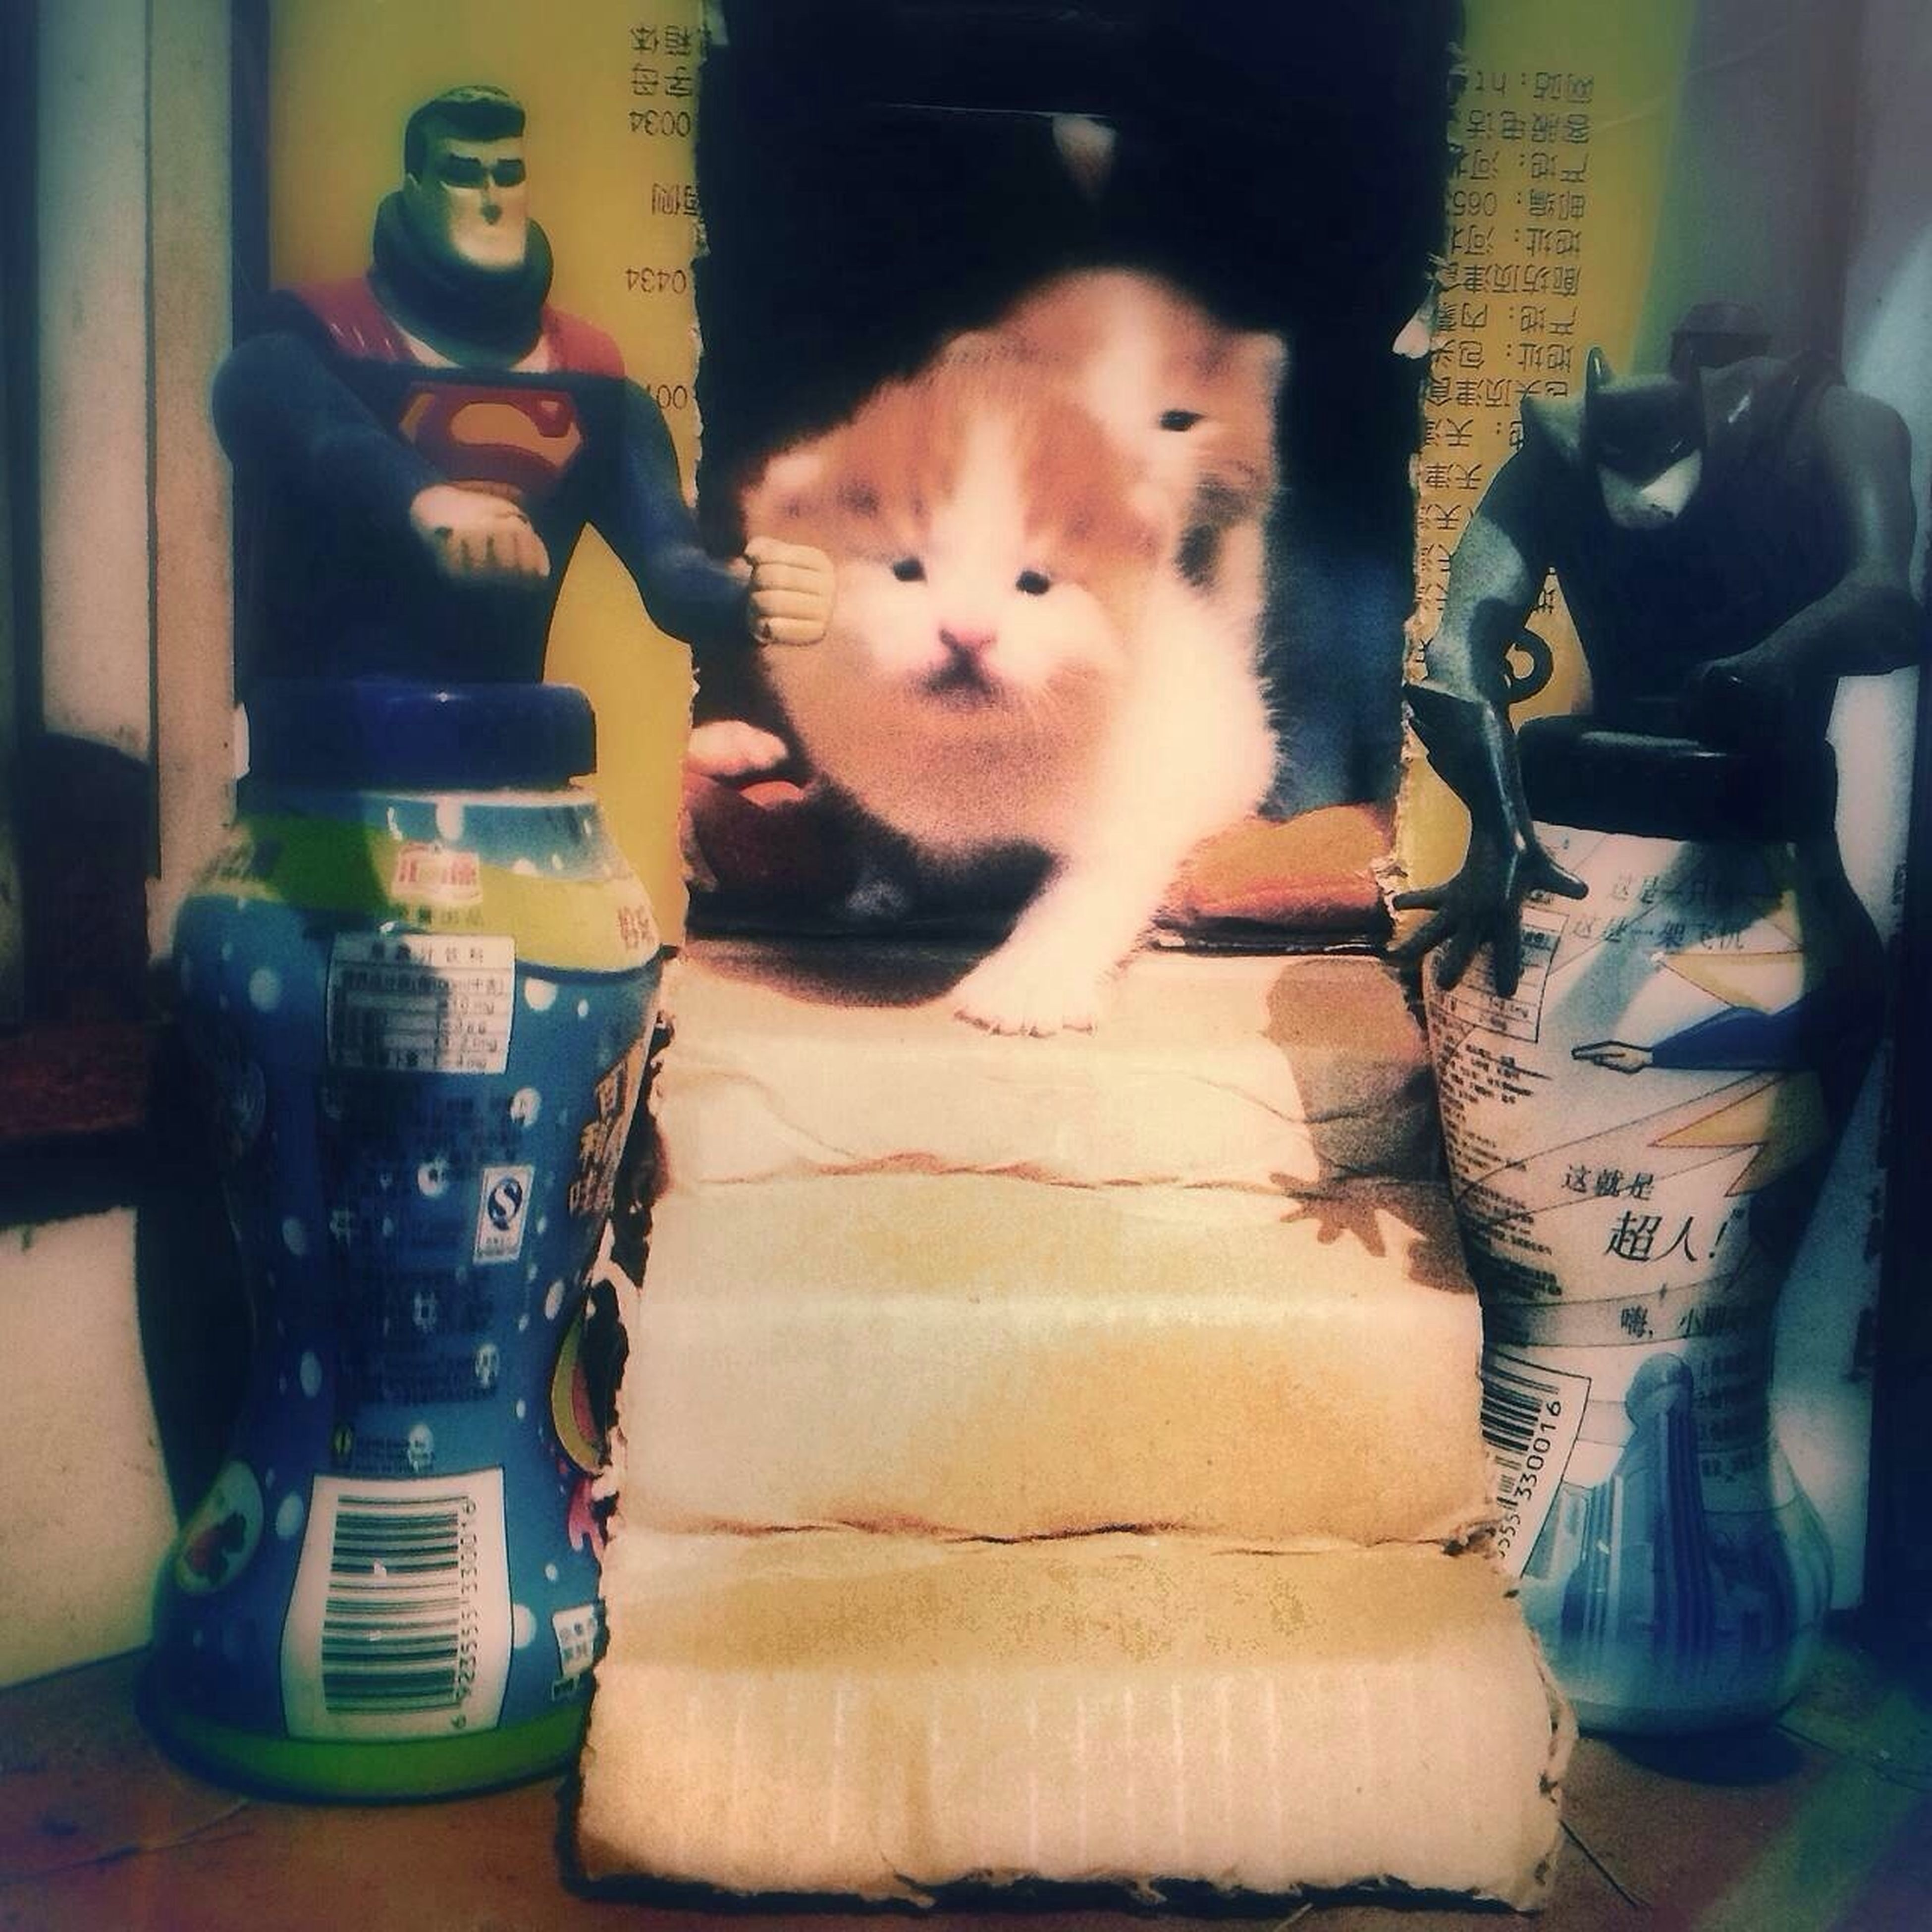 indoors, pets, domestic animals, domestic cat, cat, one animal, mammal, animal themes, sitting, home interior, looking at camera, portrait, feline, relaxation, sofa, front view, home, full length, chair, bed